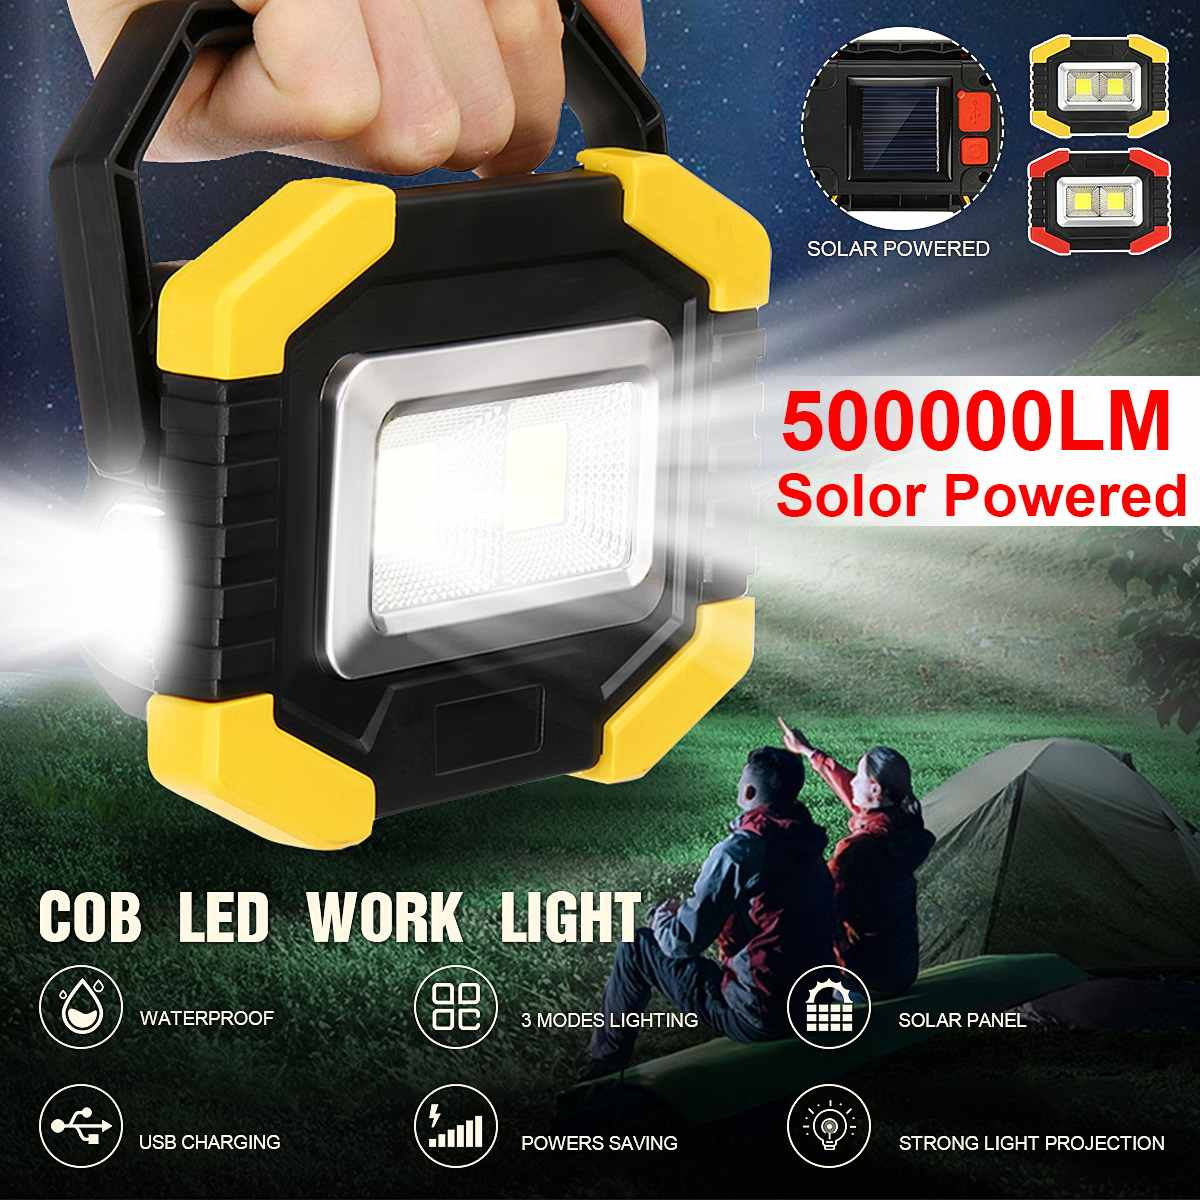 500000LM 350W Solar/Battery Powered  COB LED Floodlight Portable Spotlight Work SpotLight Can As A Power Bank Charging For Phone